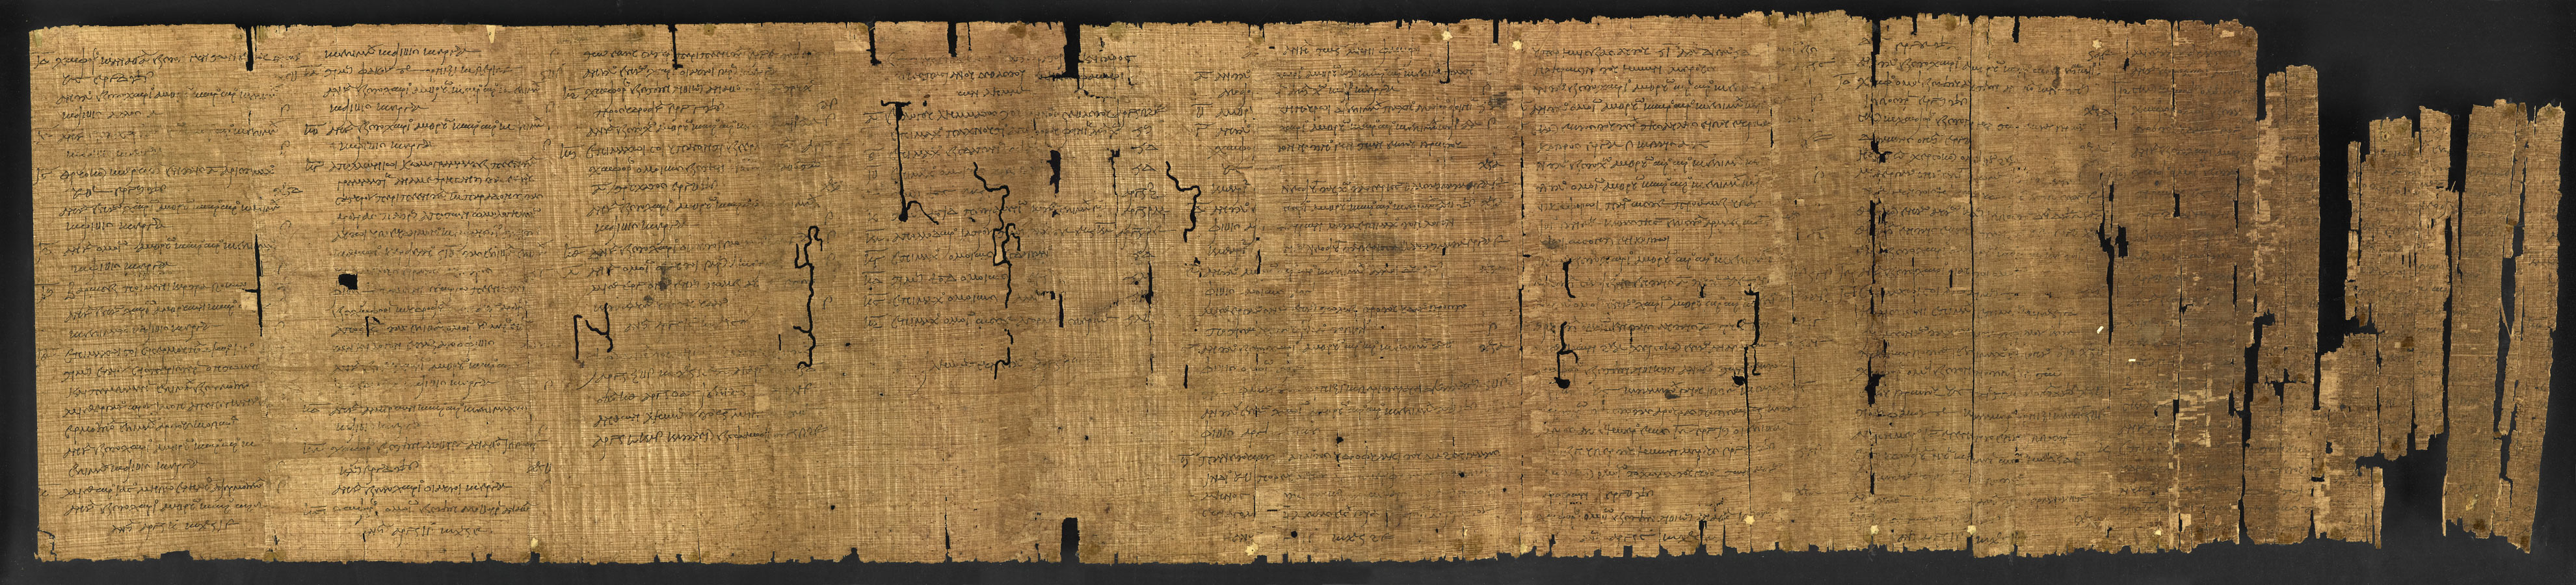 The Constitution of the Athenians (Papyrus 131 f001ar)